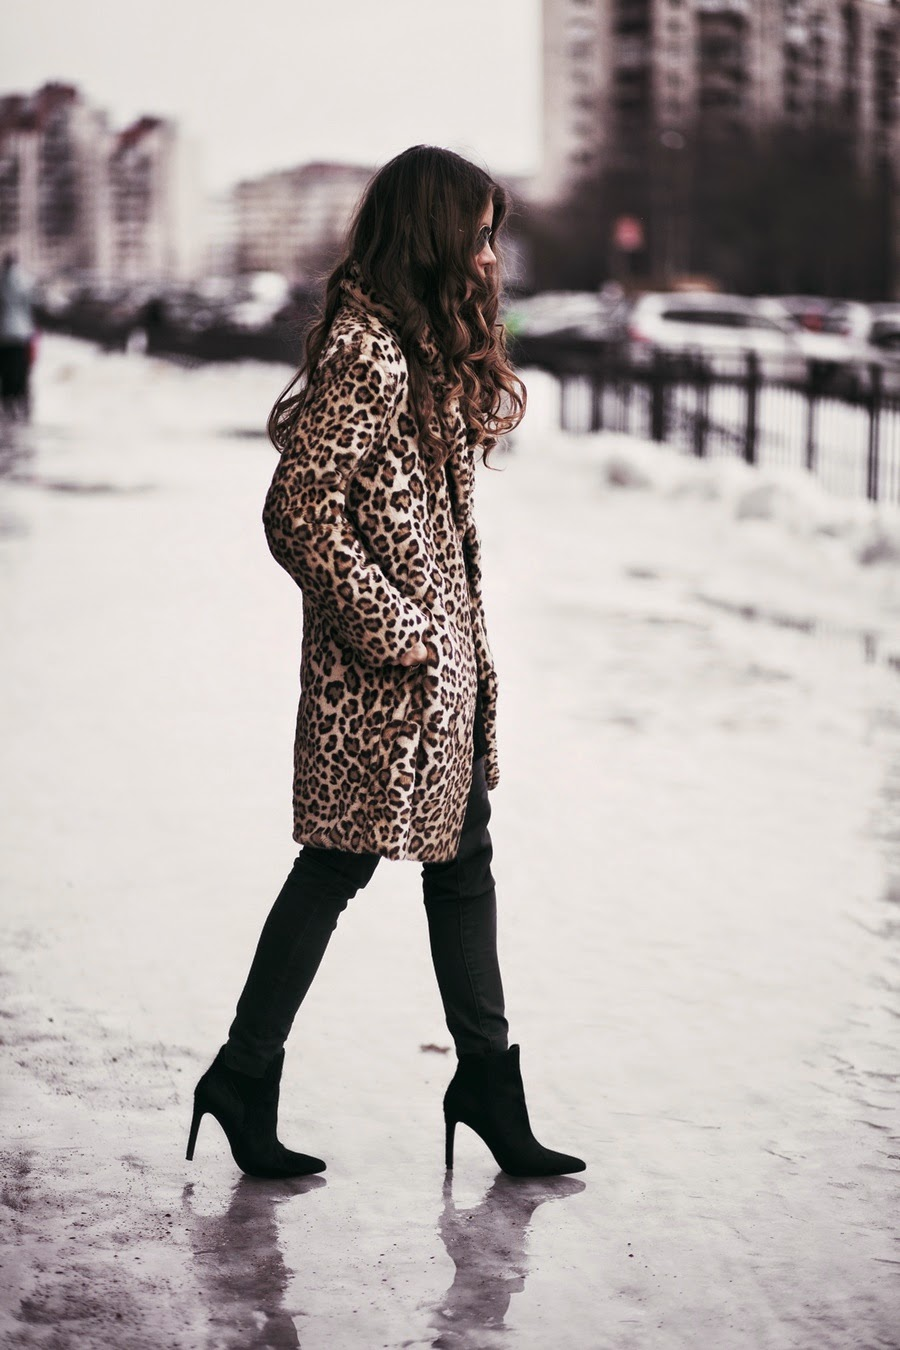 Anna Vershinina is wearing a leopard print coat from Blackfive and the ankle boots are from Zara